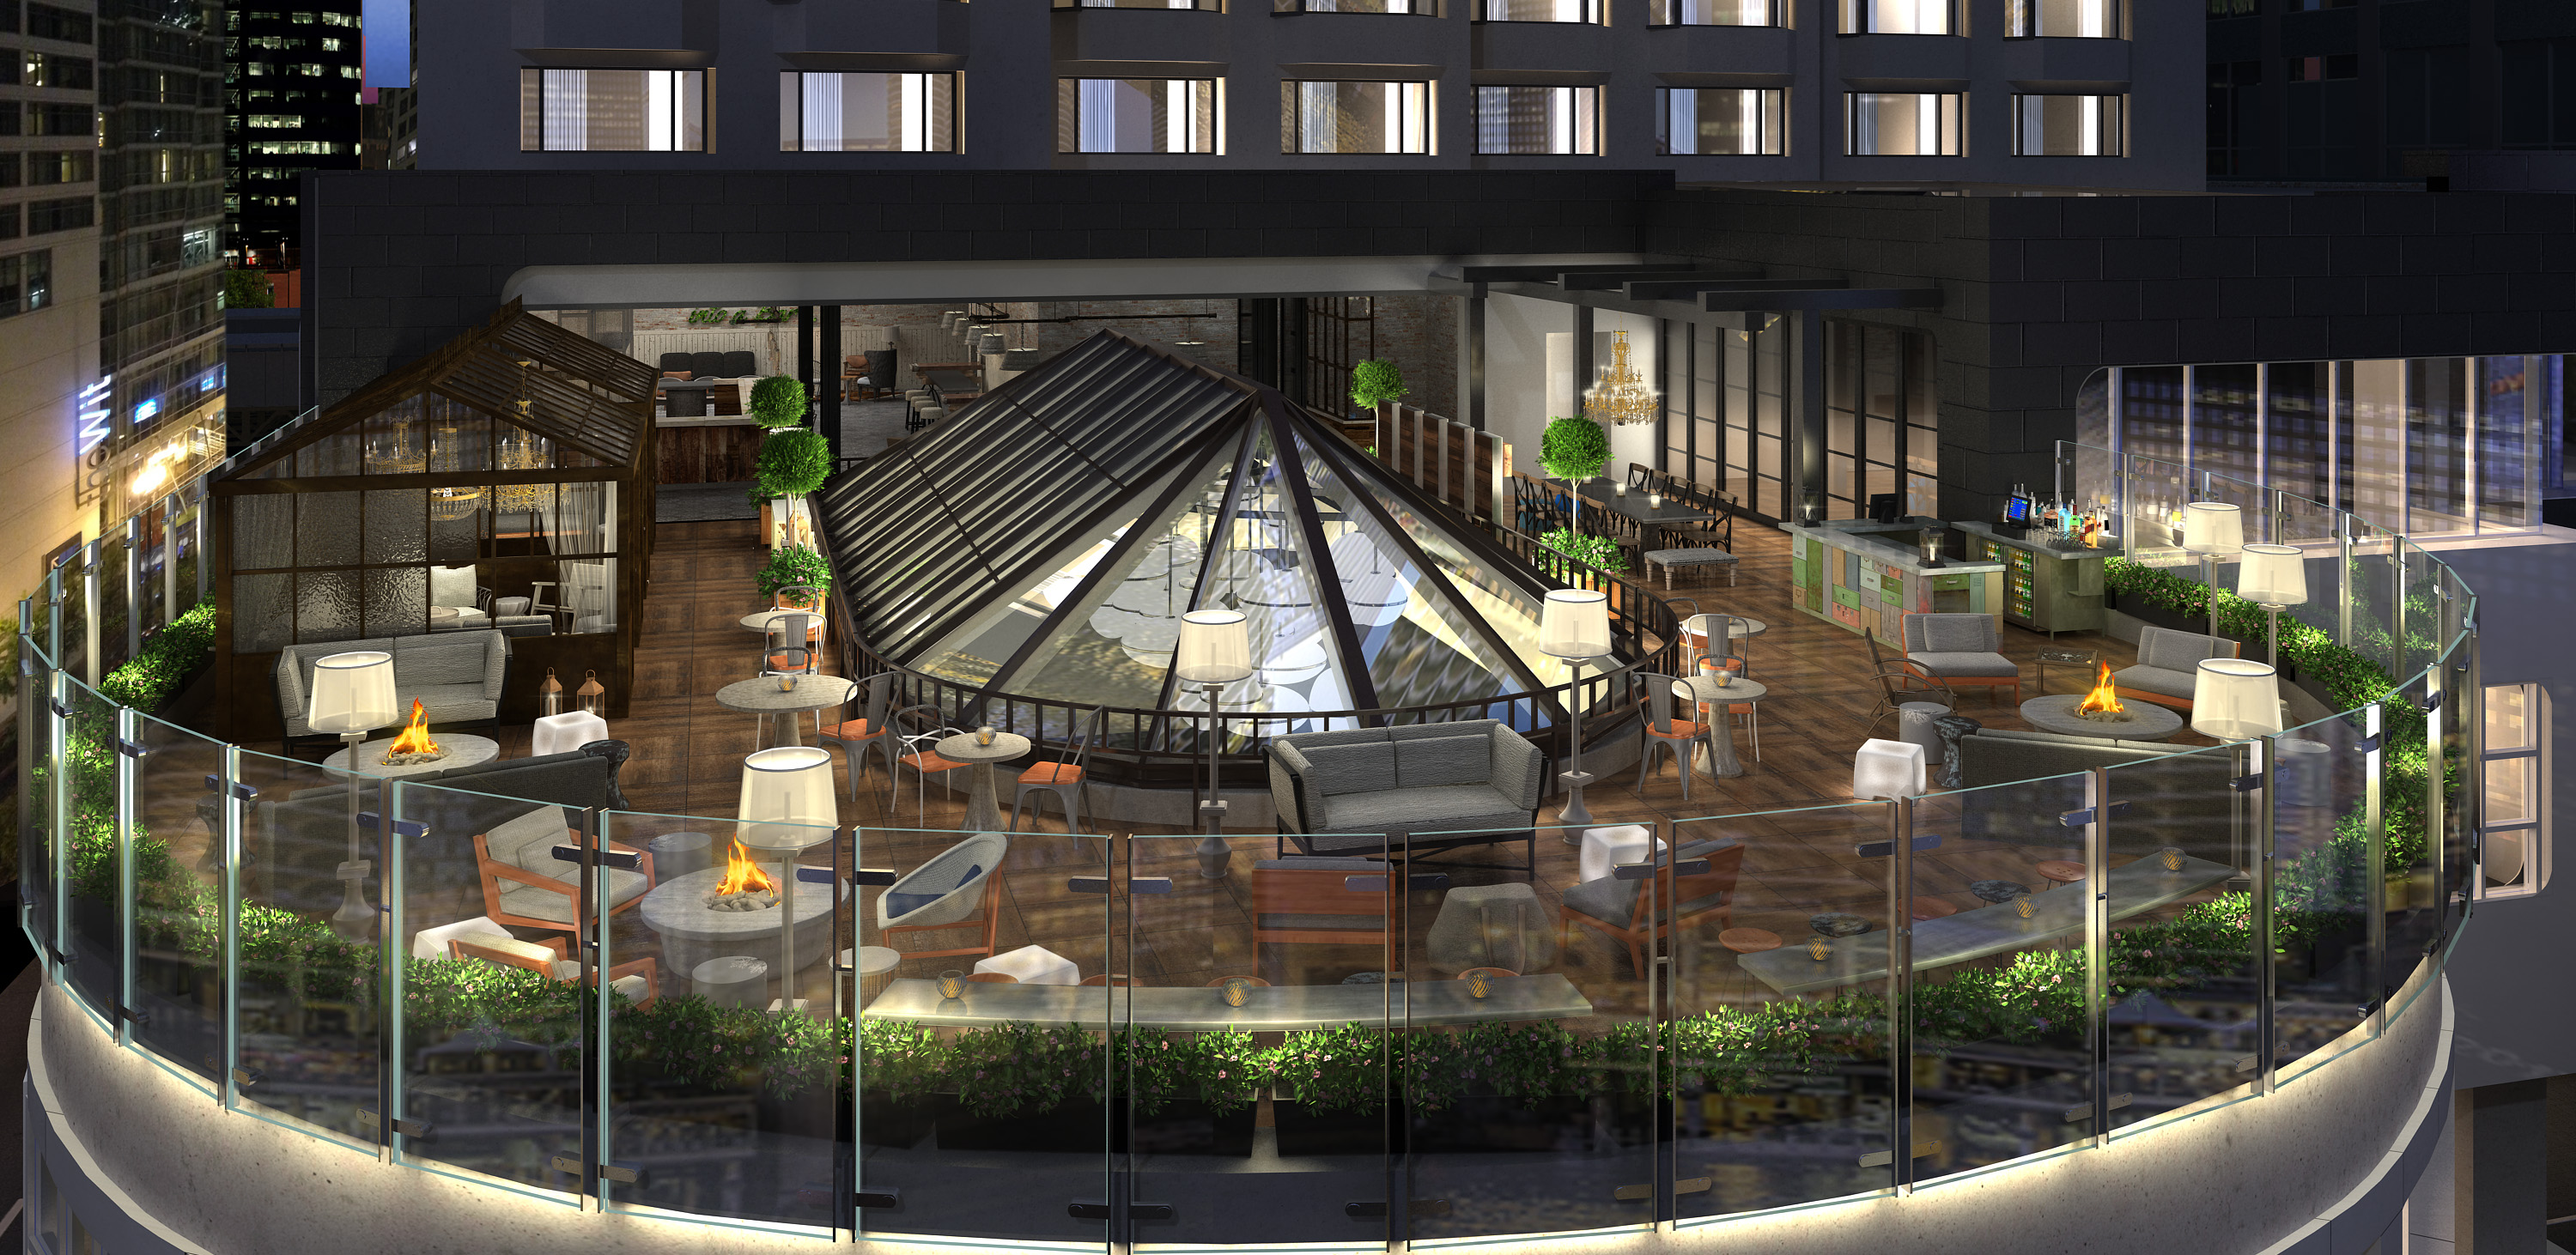 Rendering of Renaissance Hotel Terrace Bar. Anticipated opening Spring 2016. Photo courtesy of Renaissance Hotels.